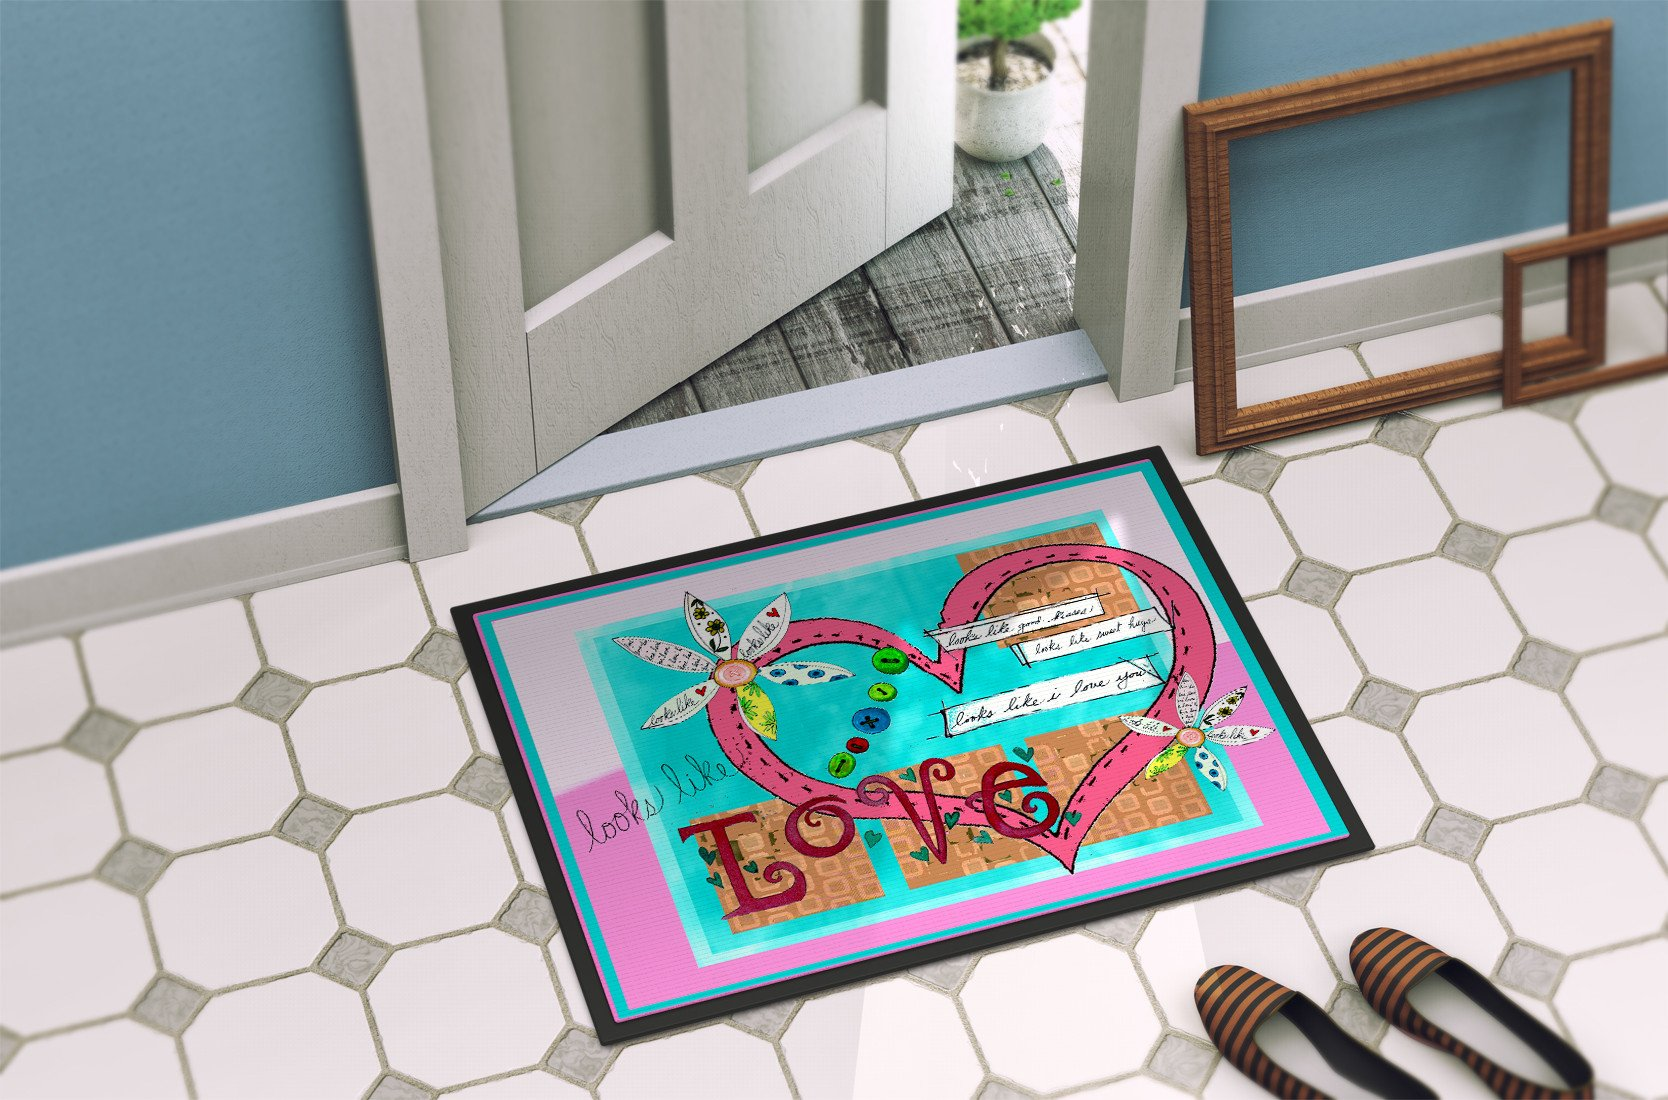 Looks Like I Love You Valentine's Day Indoor or Outdoor Mat 24x36 PJC1114JMAT - the-store.com